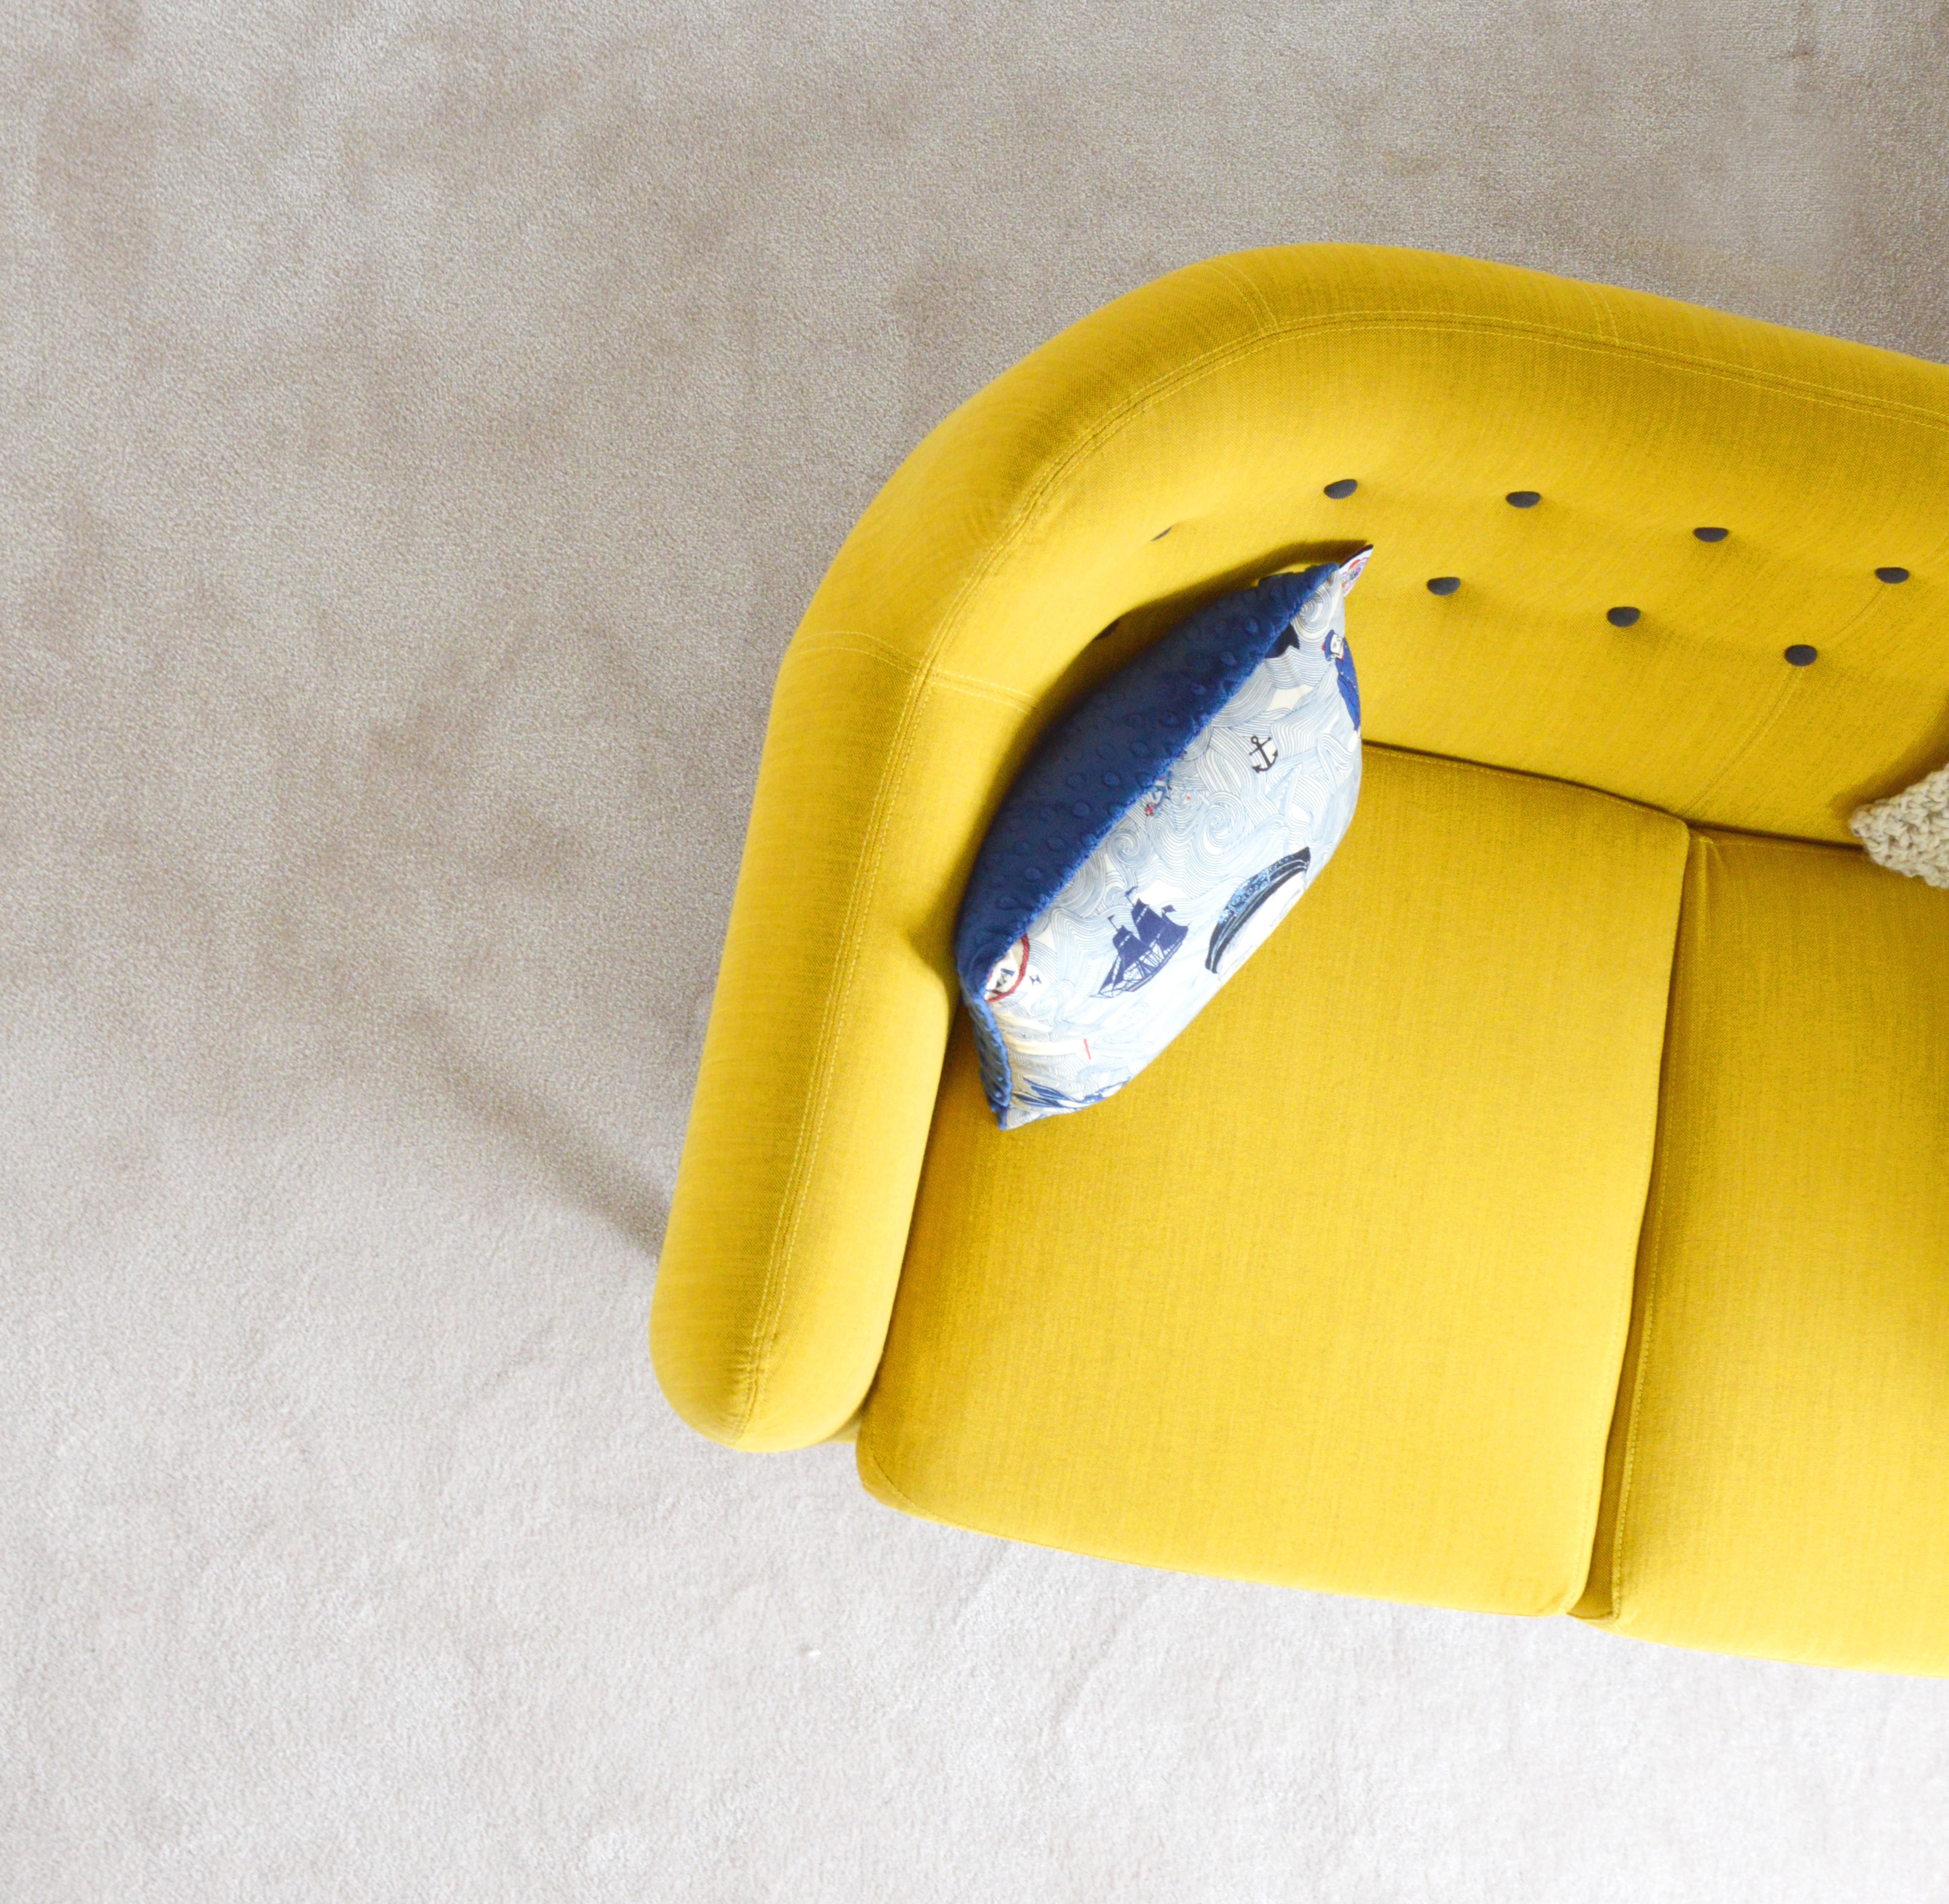 A yellow sofa with blue cushions in France